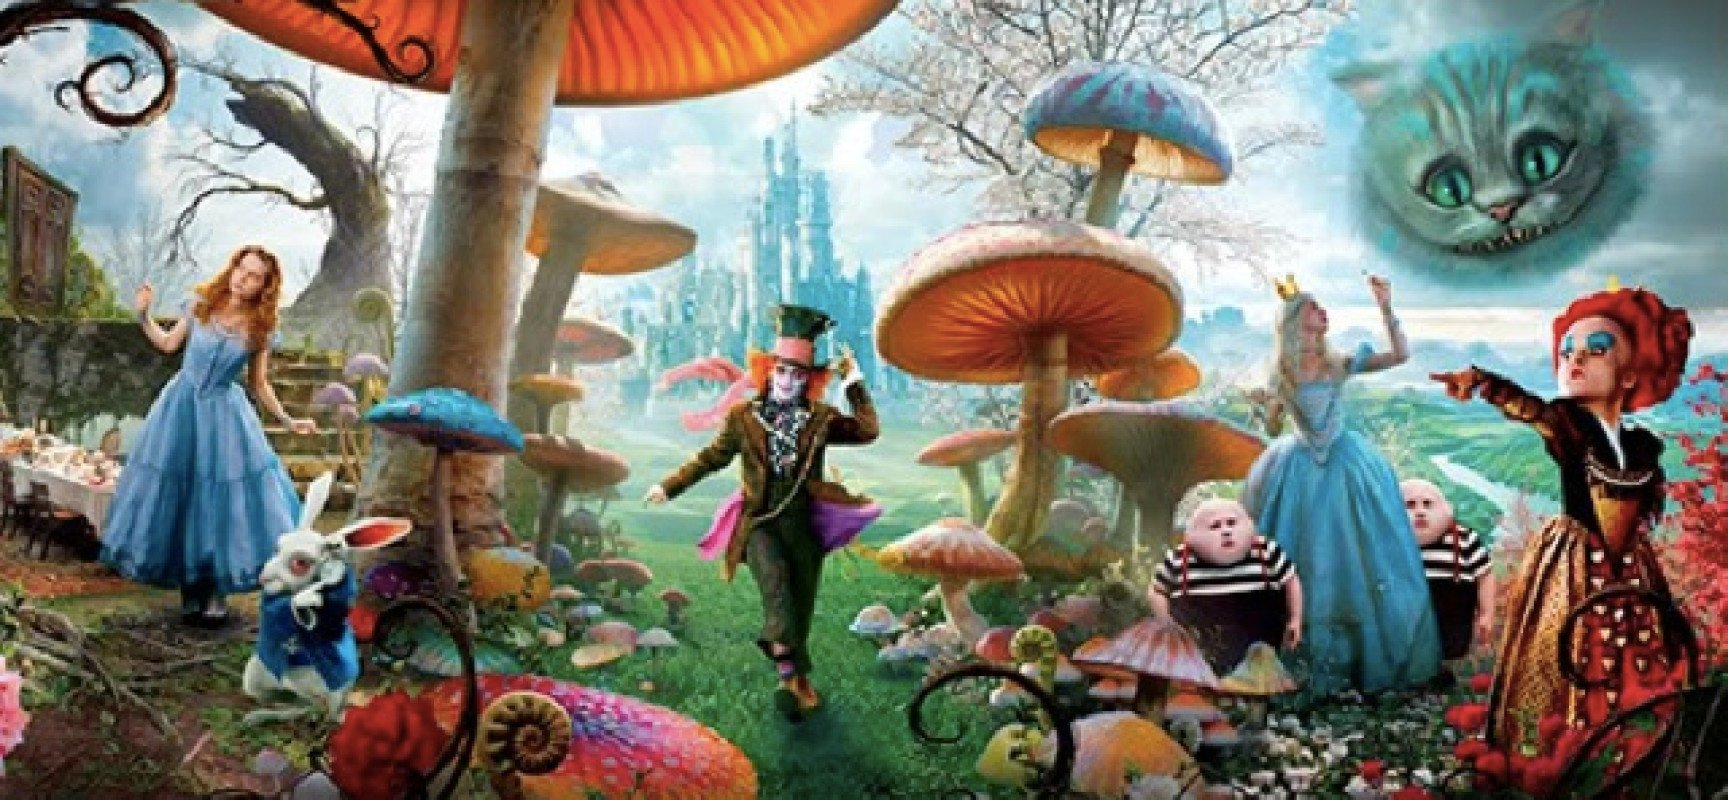 Living In Wonderland On The Road To Massive Worldwide Wealth Destruction And Panic